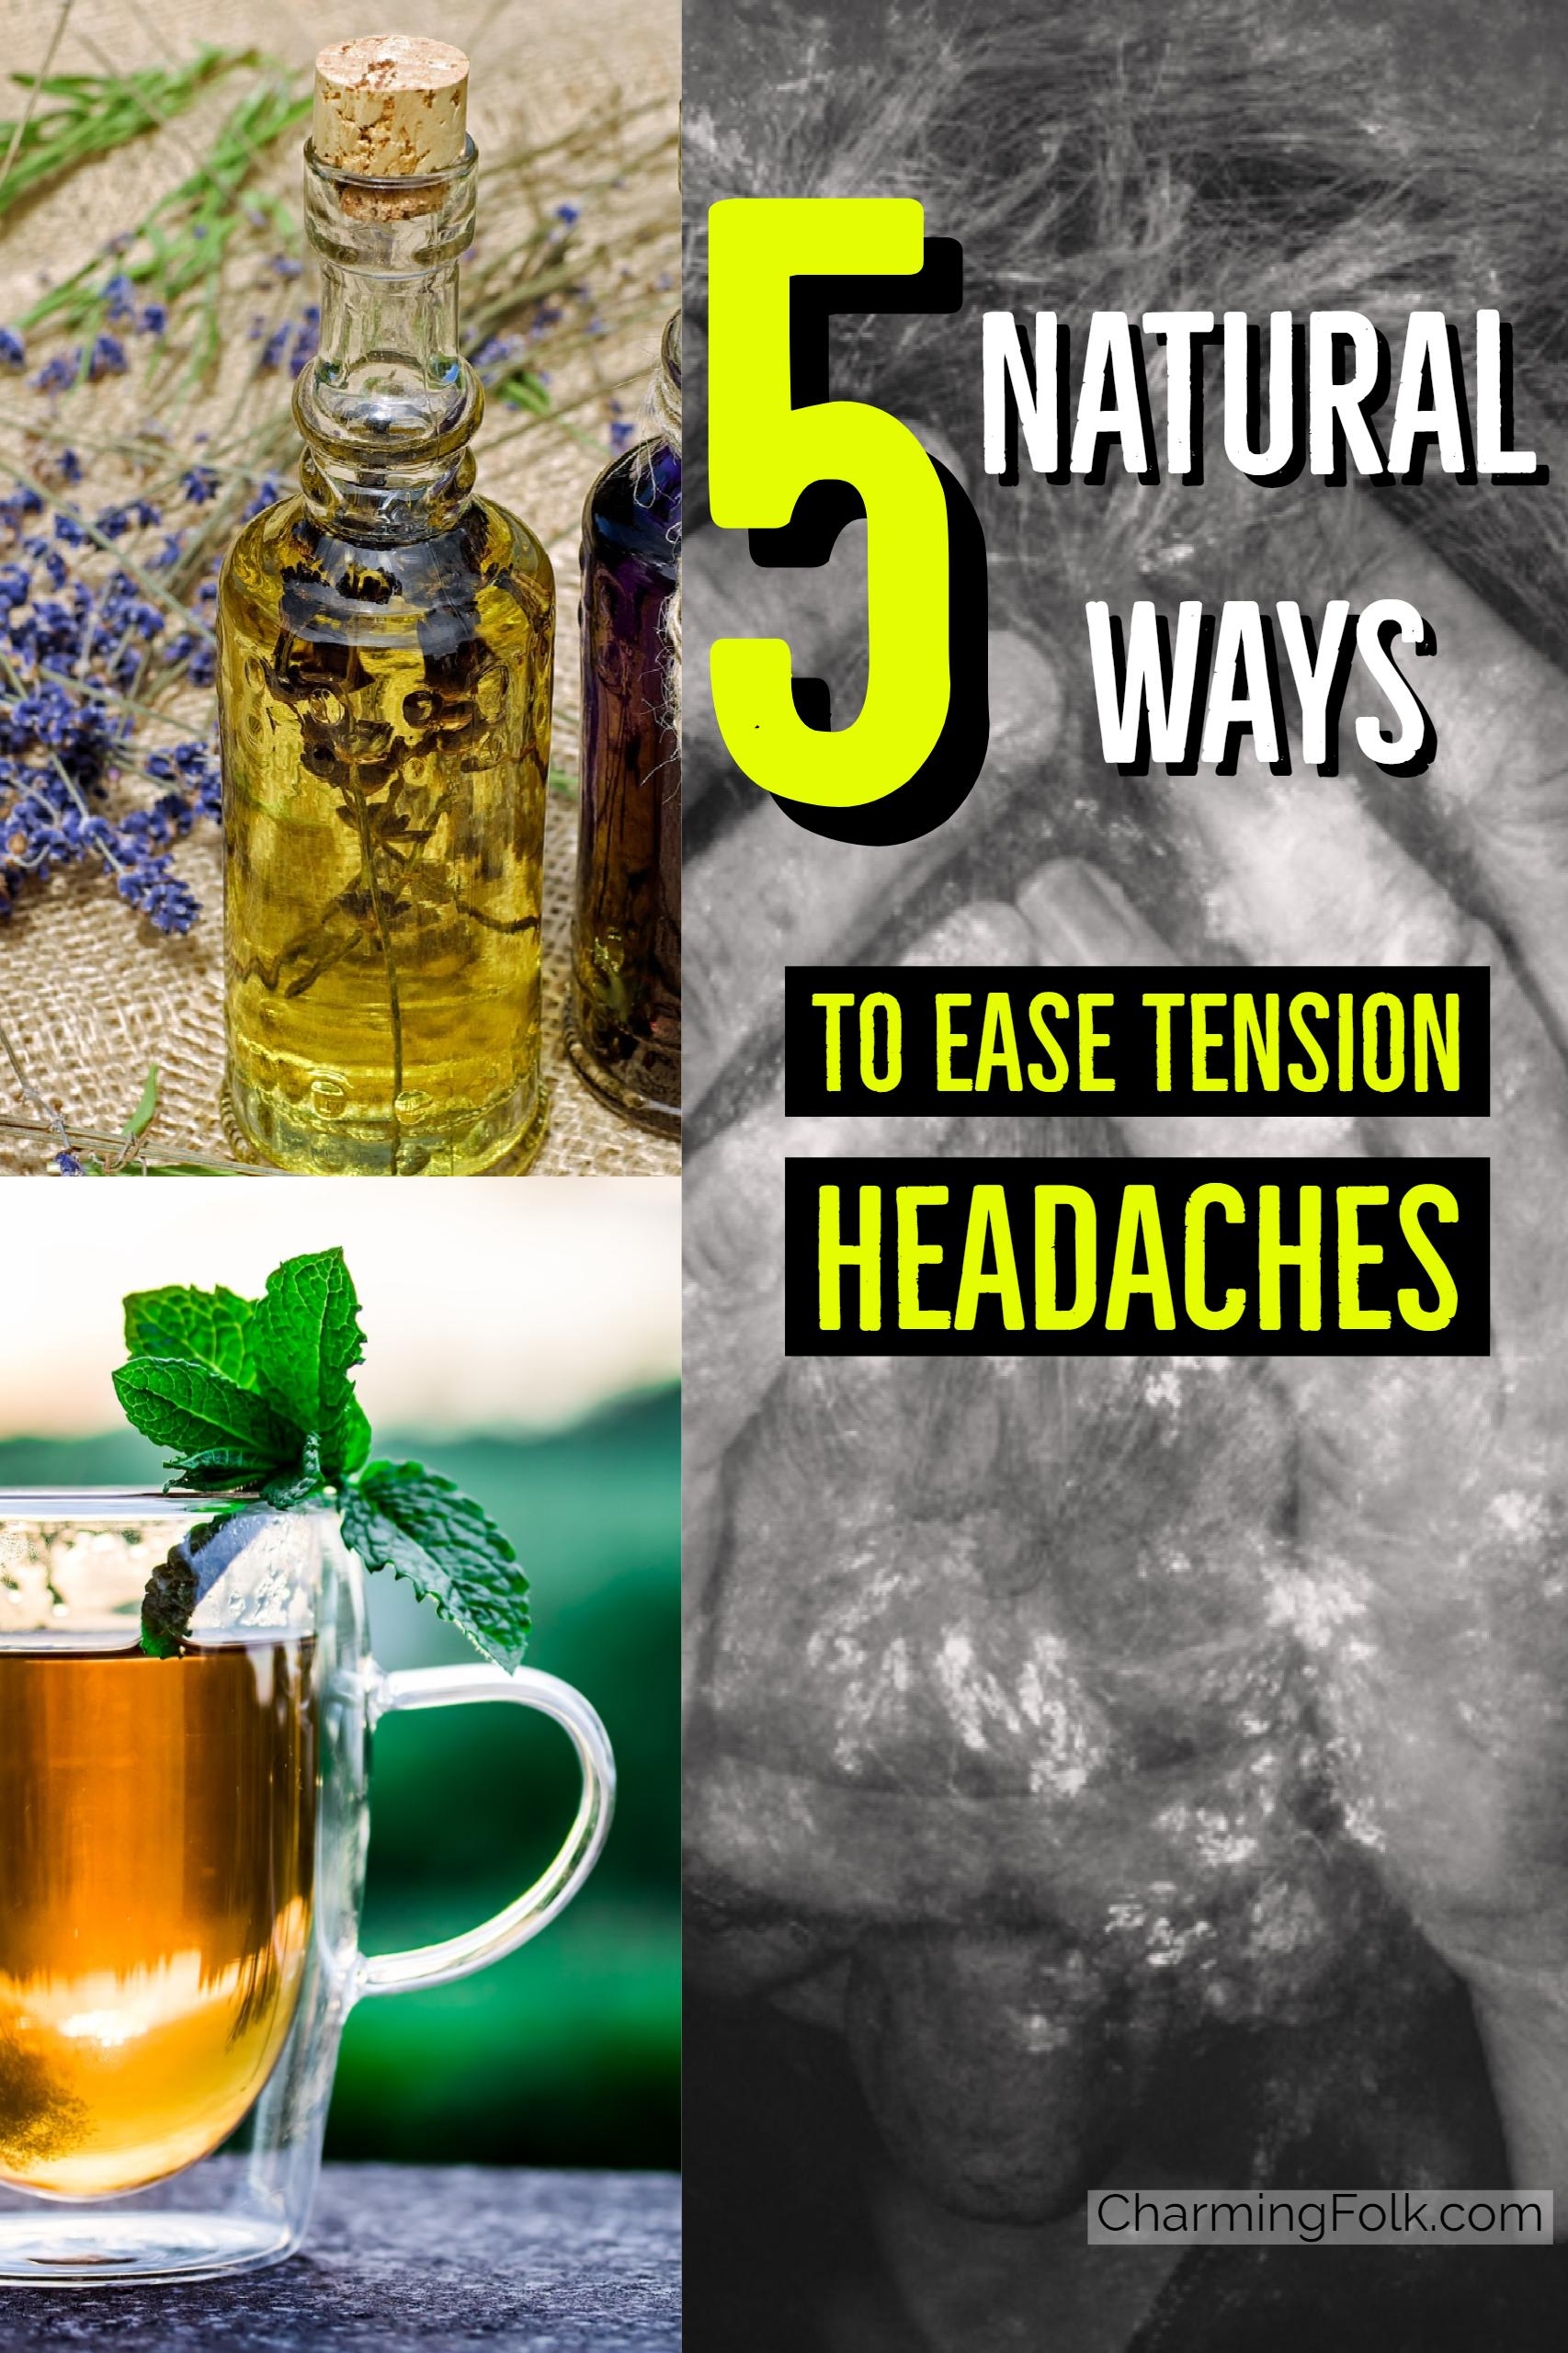 5-natural-simple-ways-to-help-aid-tension-headaches.jpg